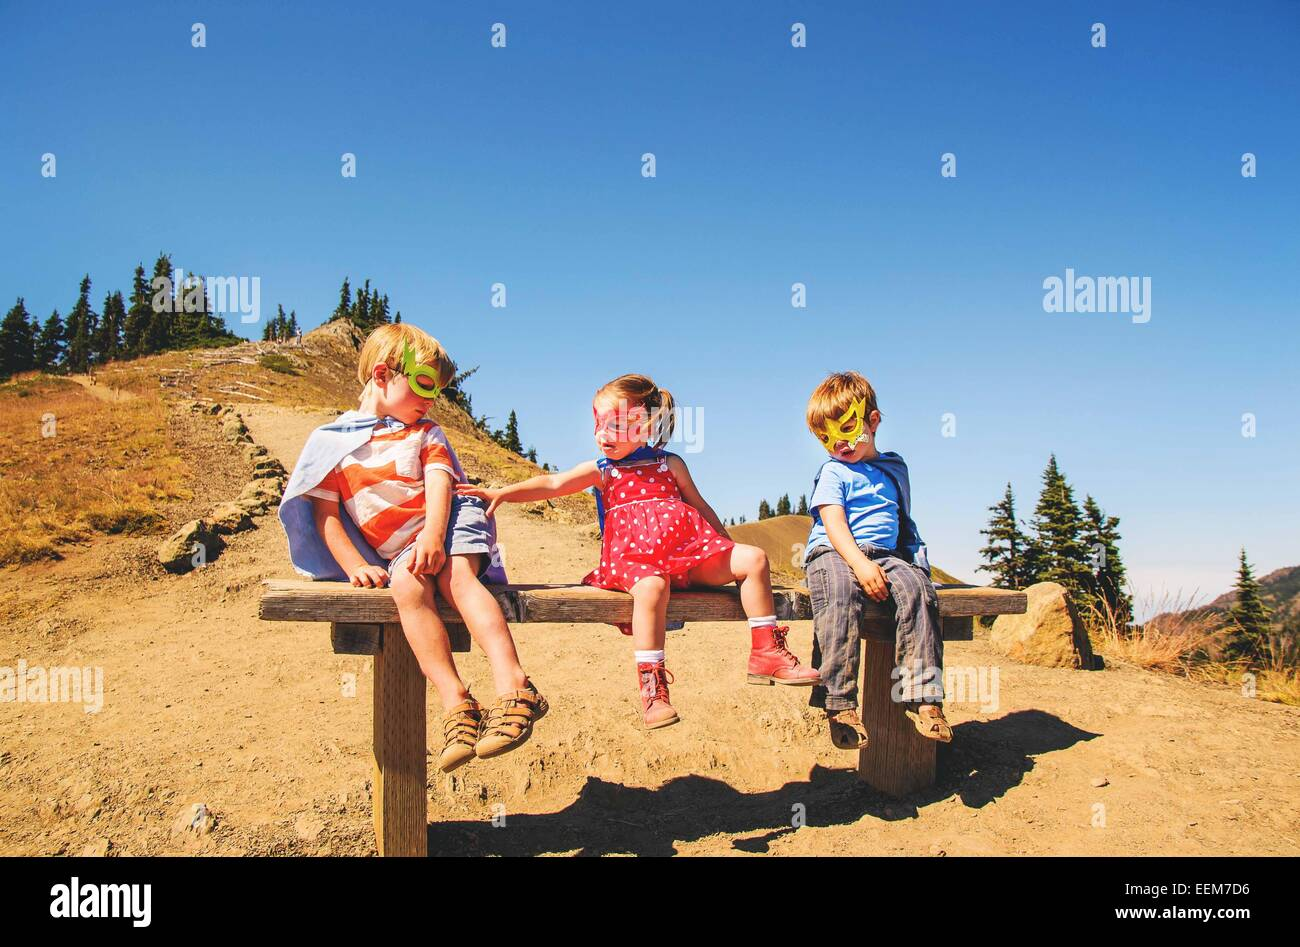 Trois enfants (2-3, 4-5) sitting on bench portant des costumes de super héros Photo Stock